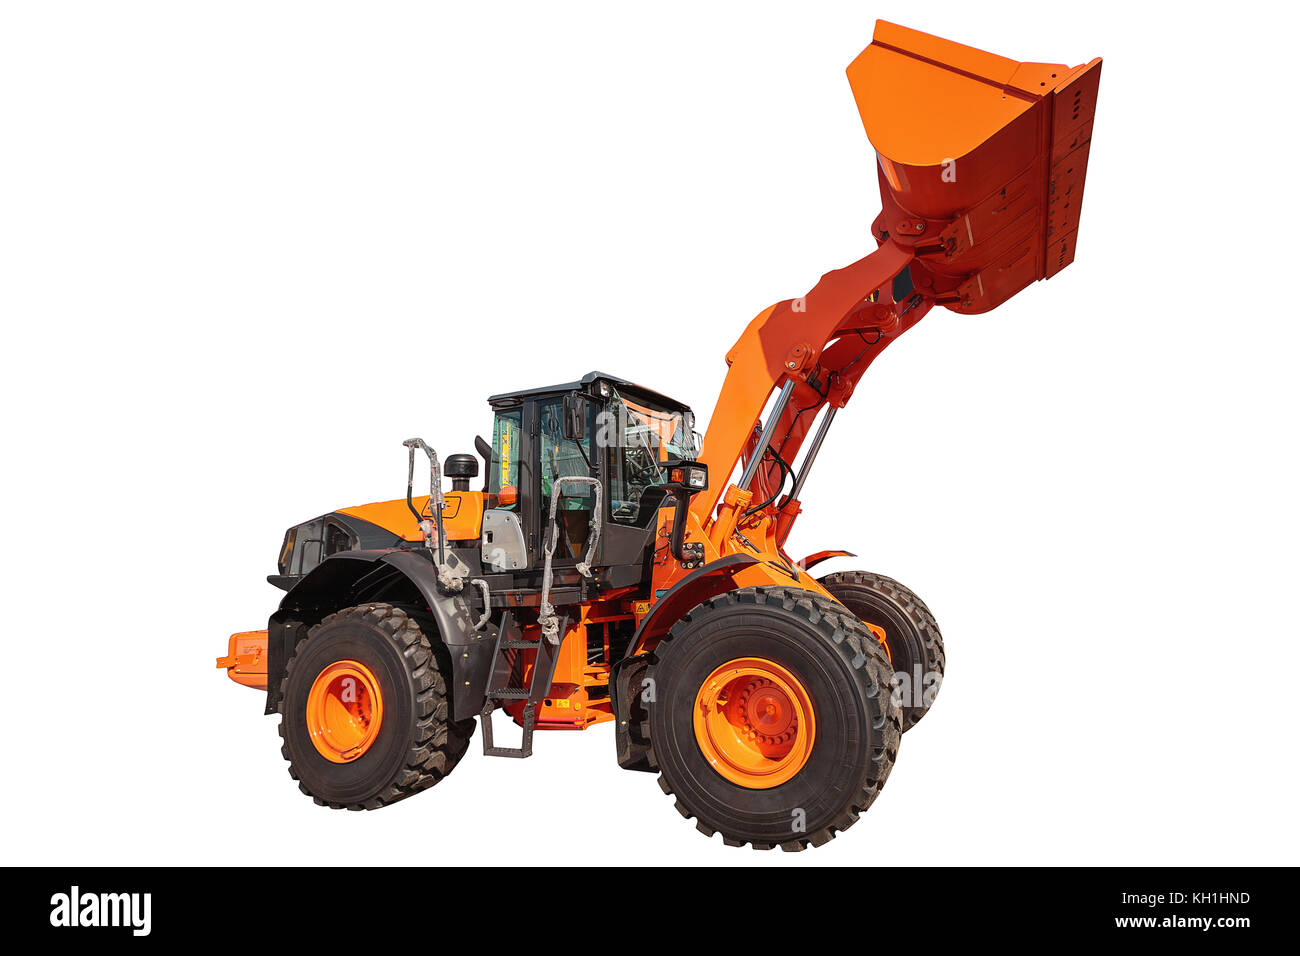 Modern excavator bulldozer with clipping path isolated on white background - Stock Image